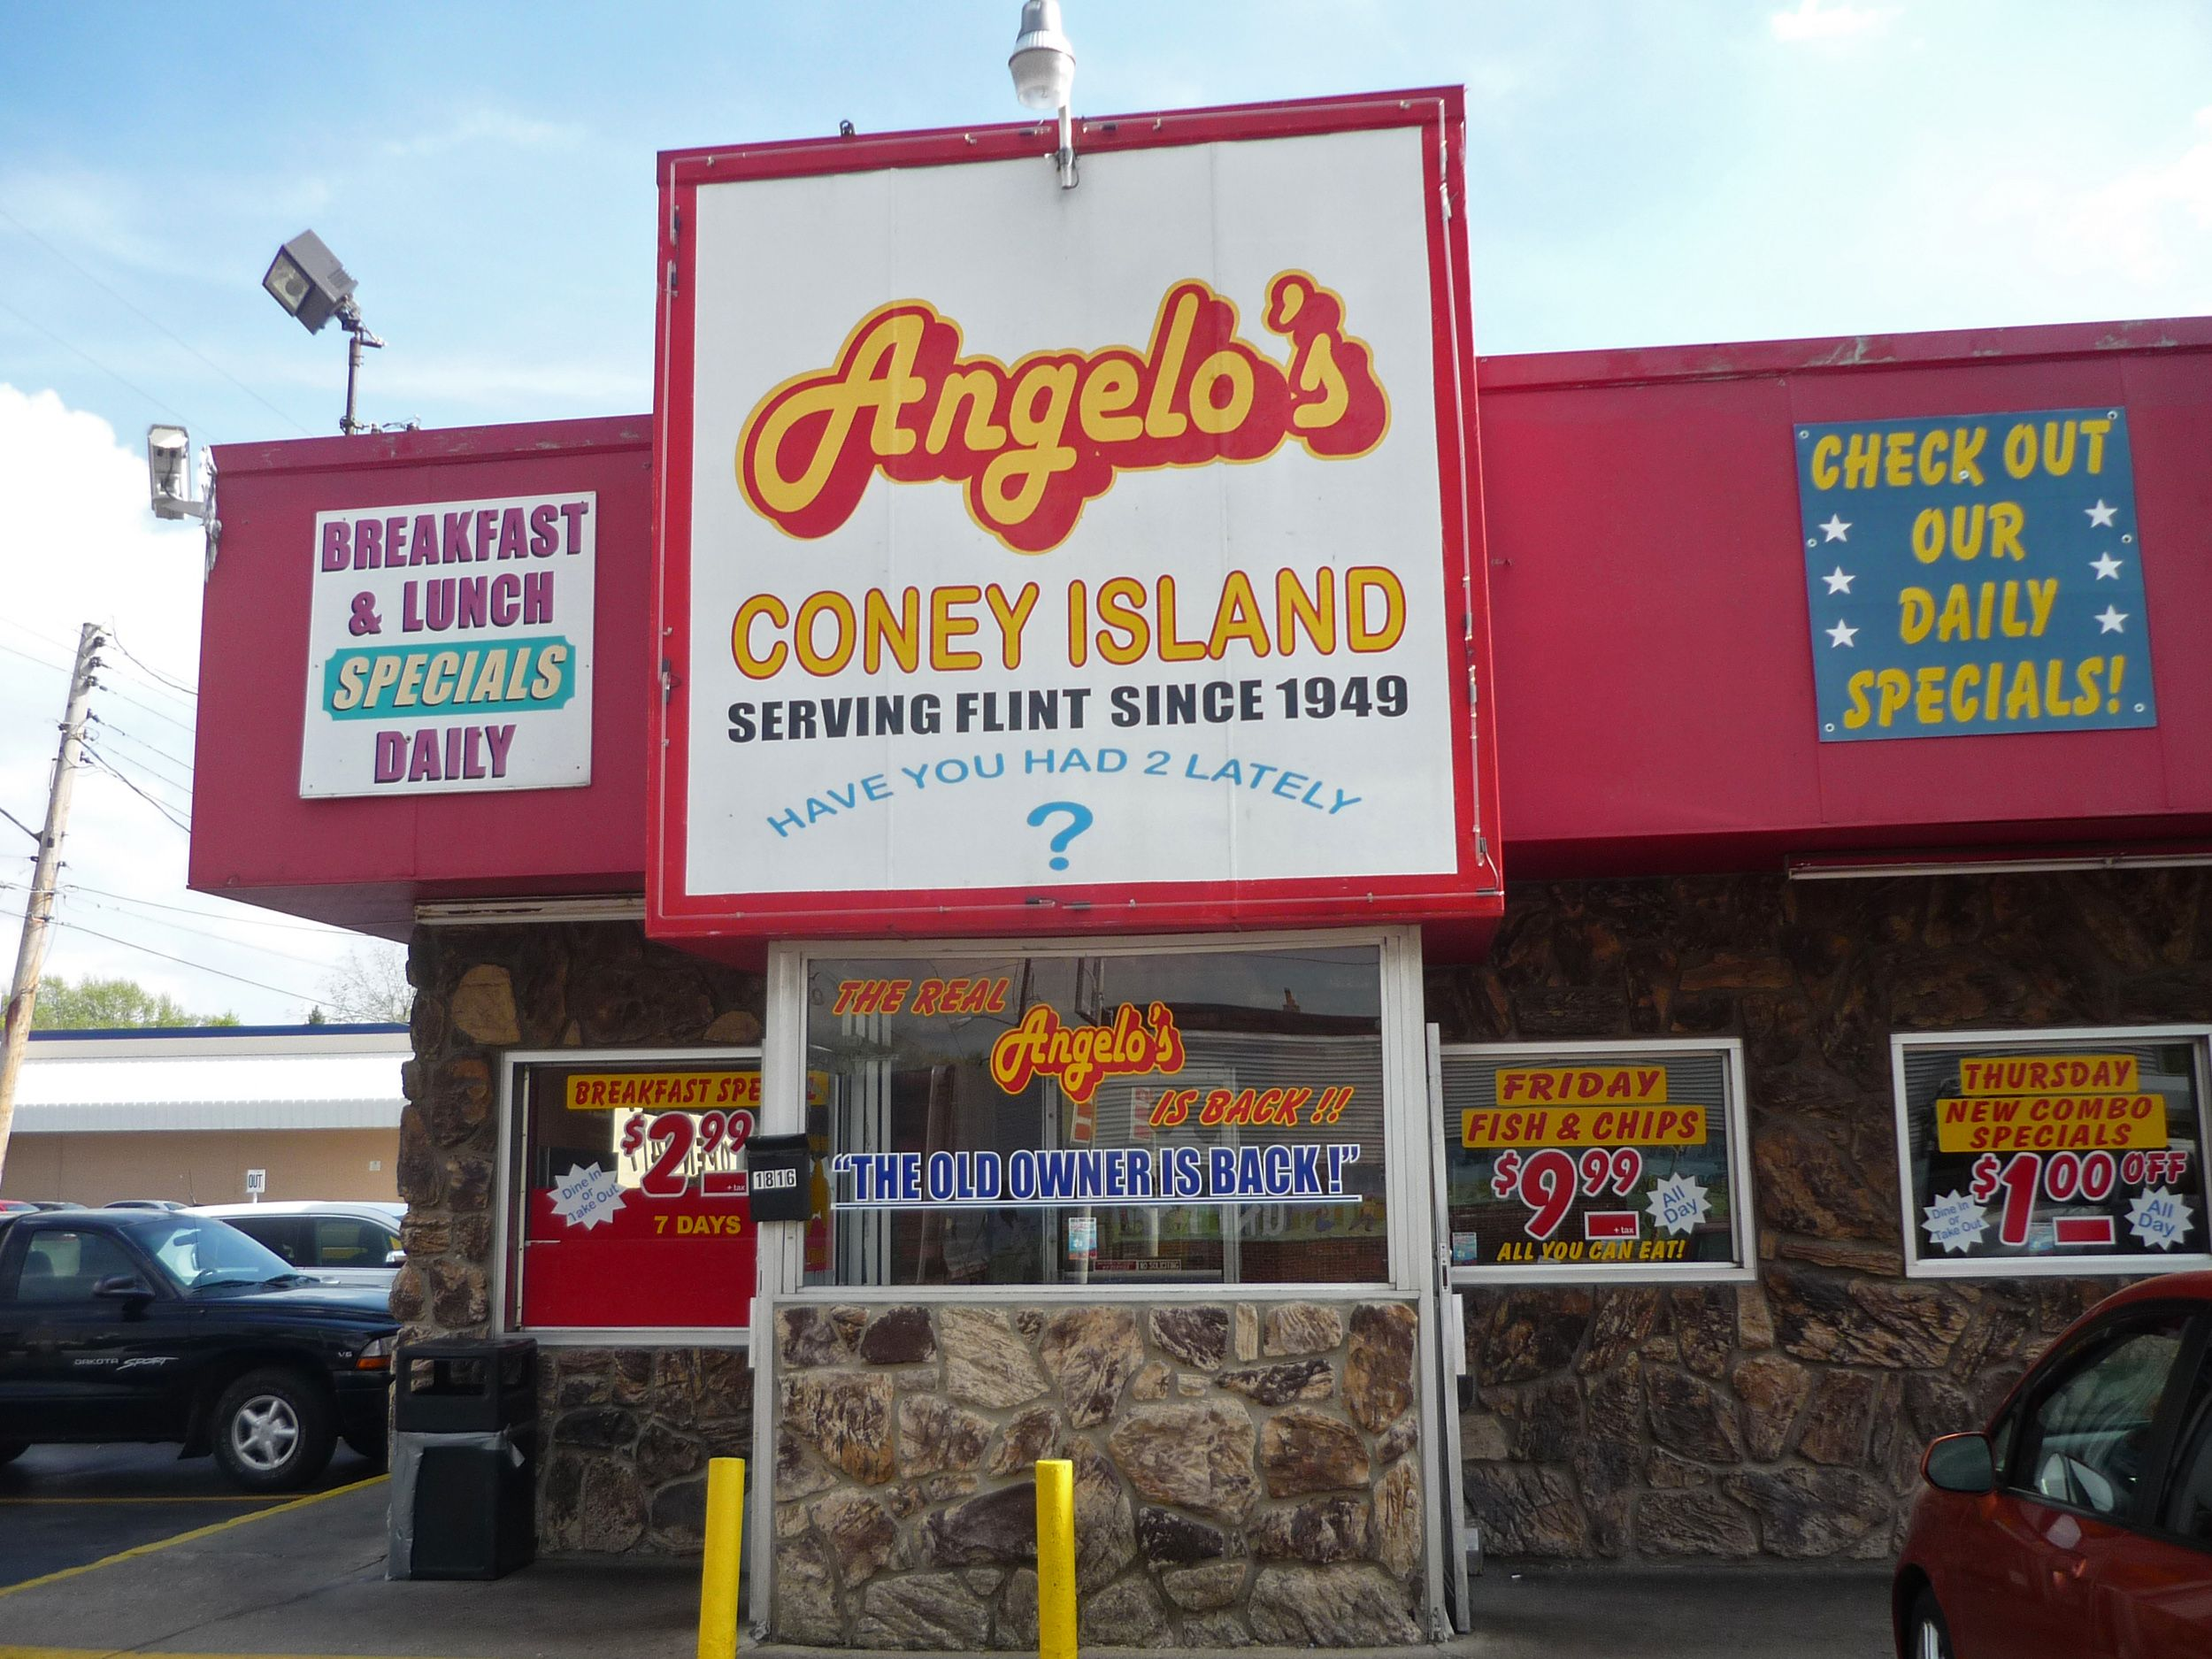 A Tour Of Michigan S Coney Island Hot Dogs In Detroit Flint And Jackson With Images Coney Island Hot Dog Coney Island Chili Dogs